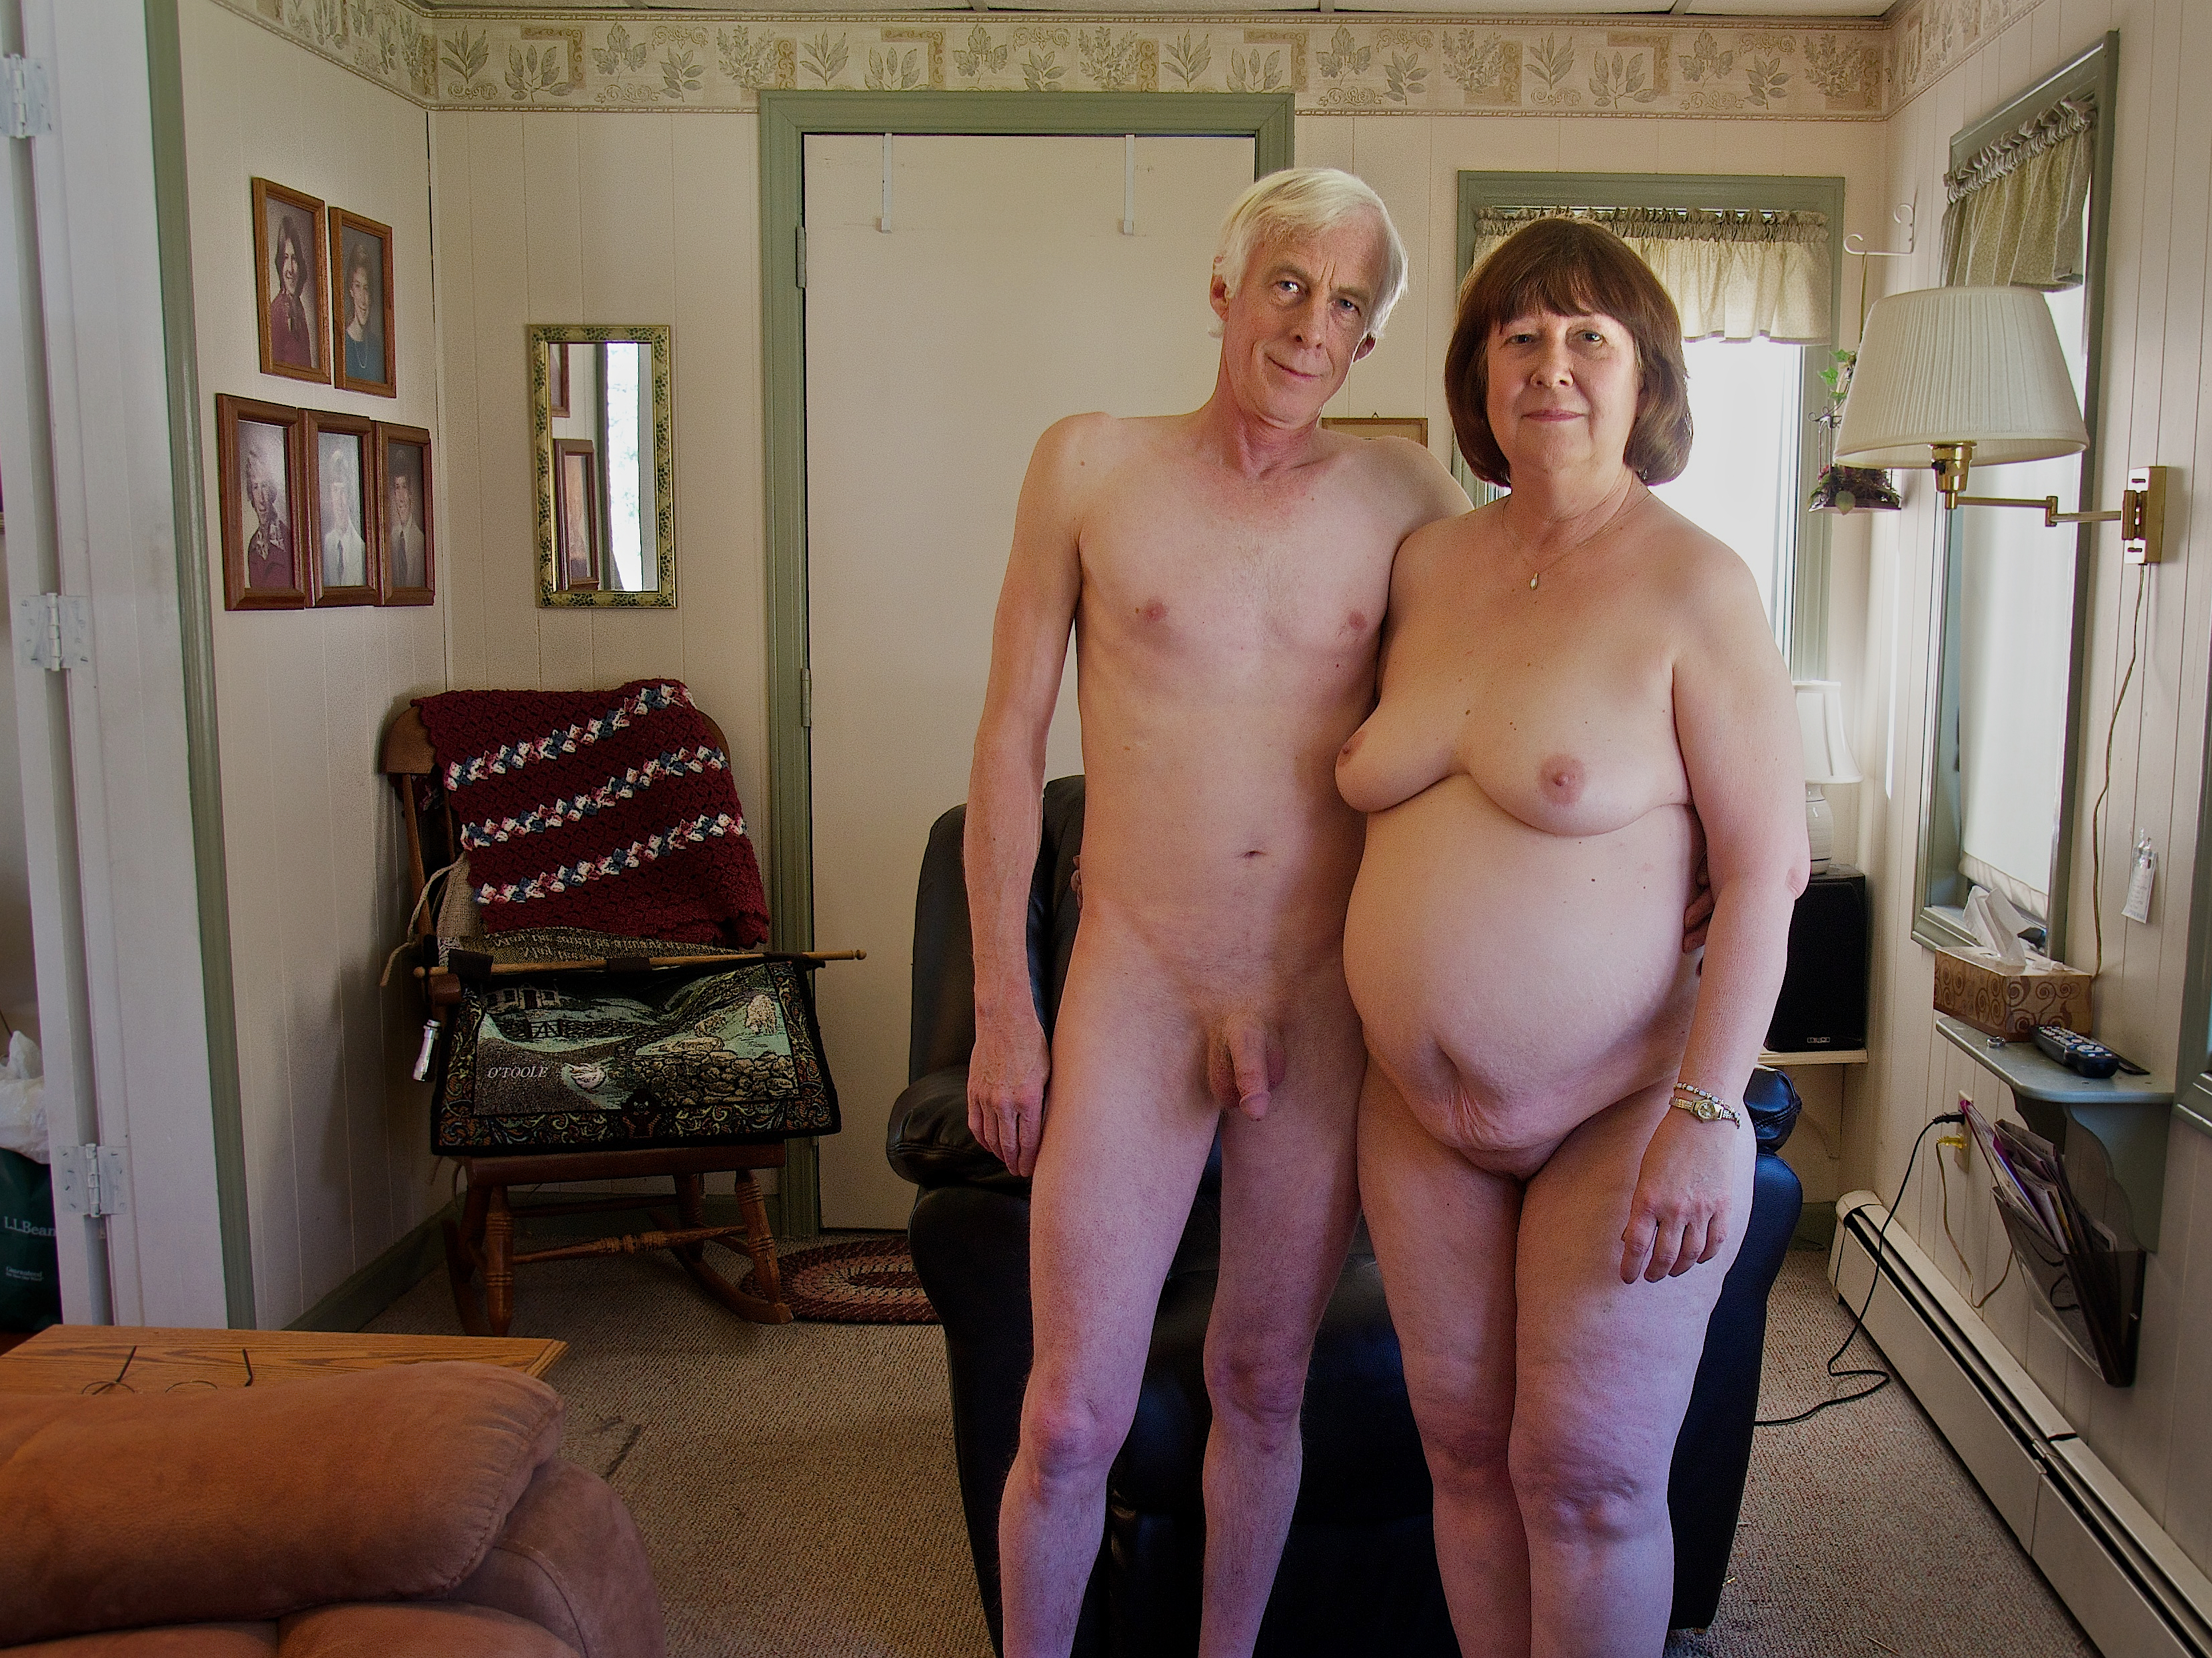 Nude older couple in their family room